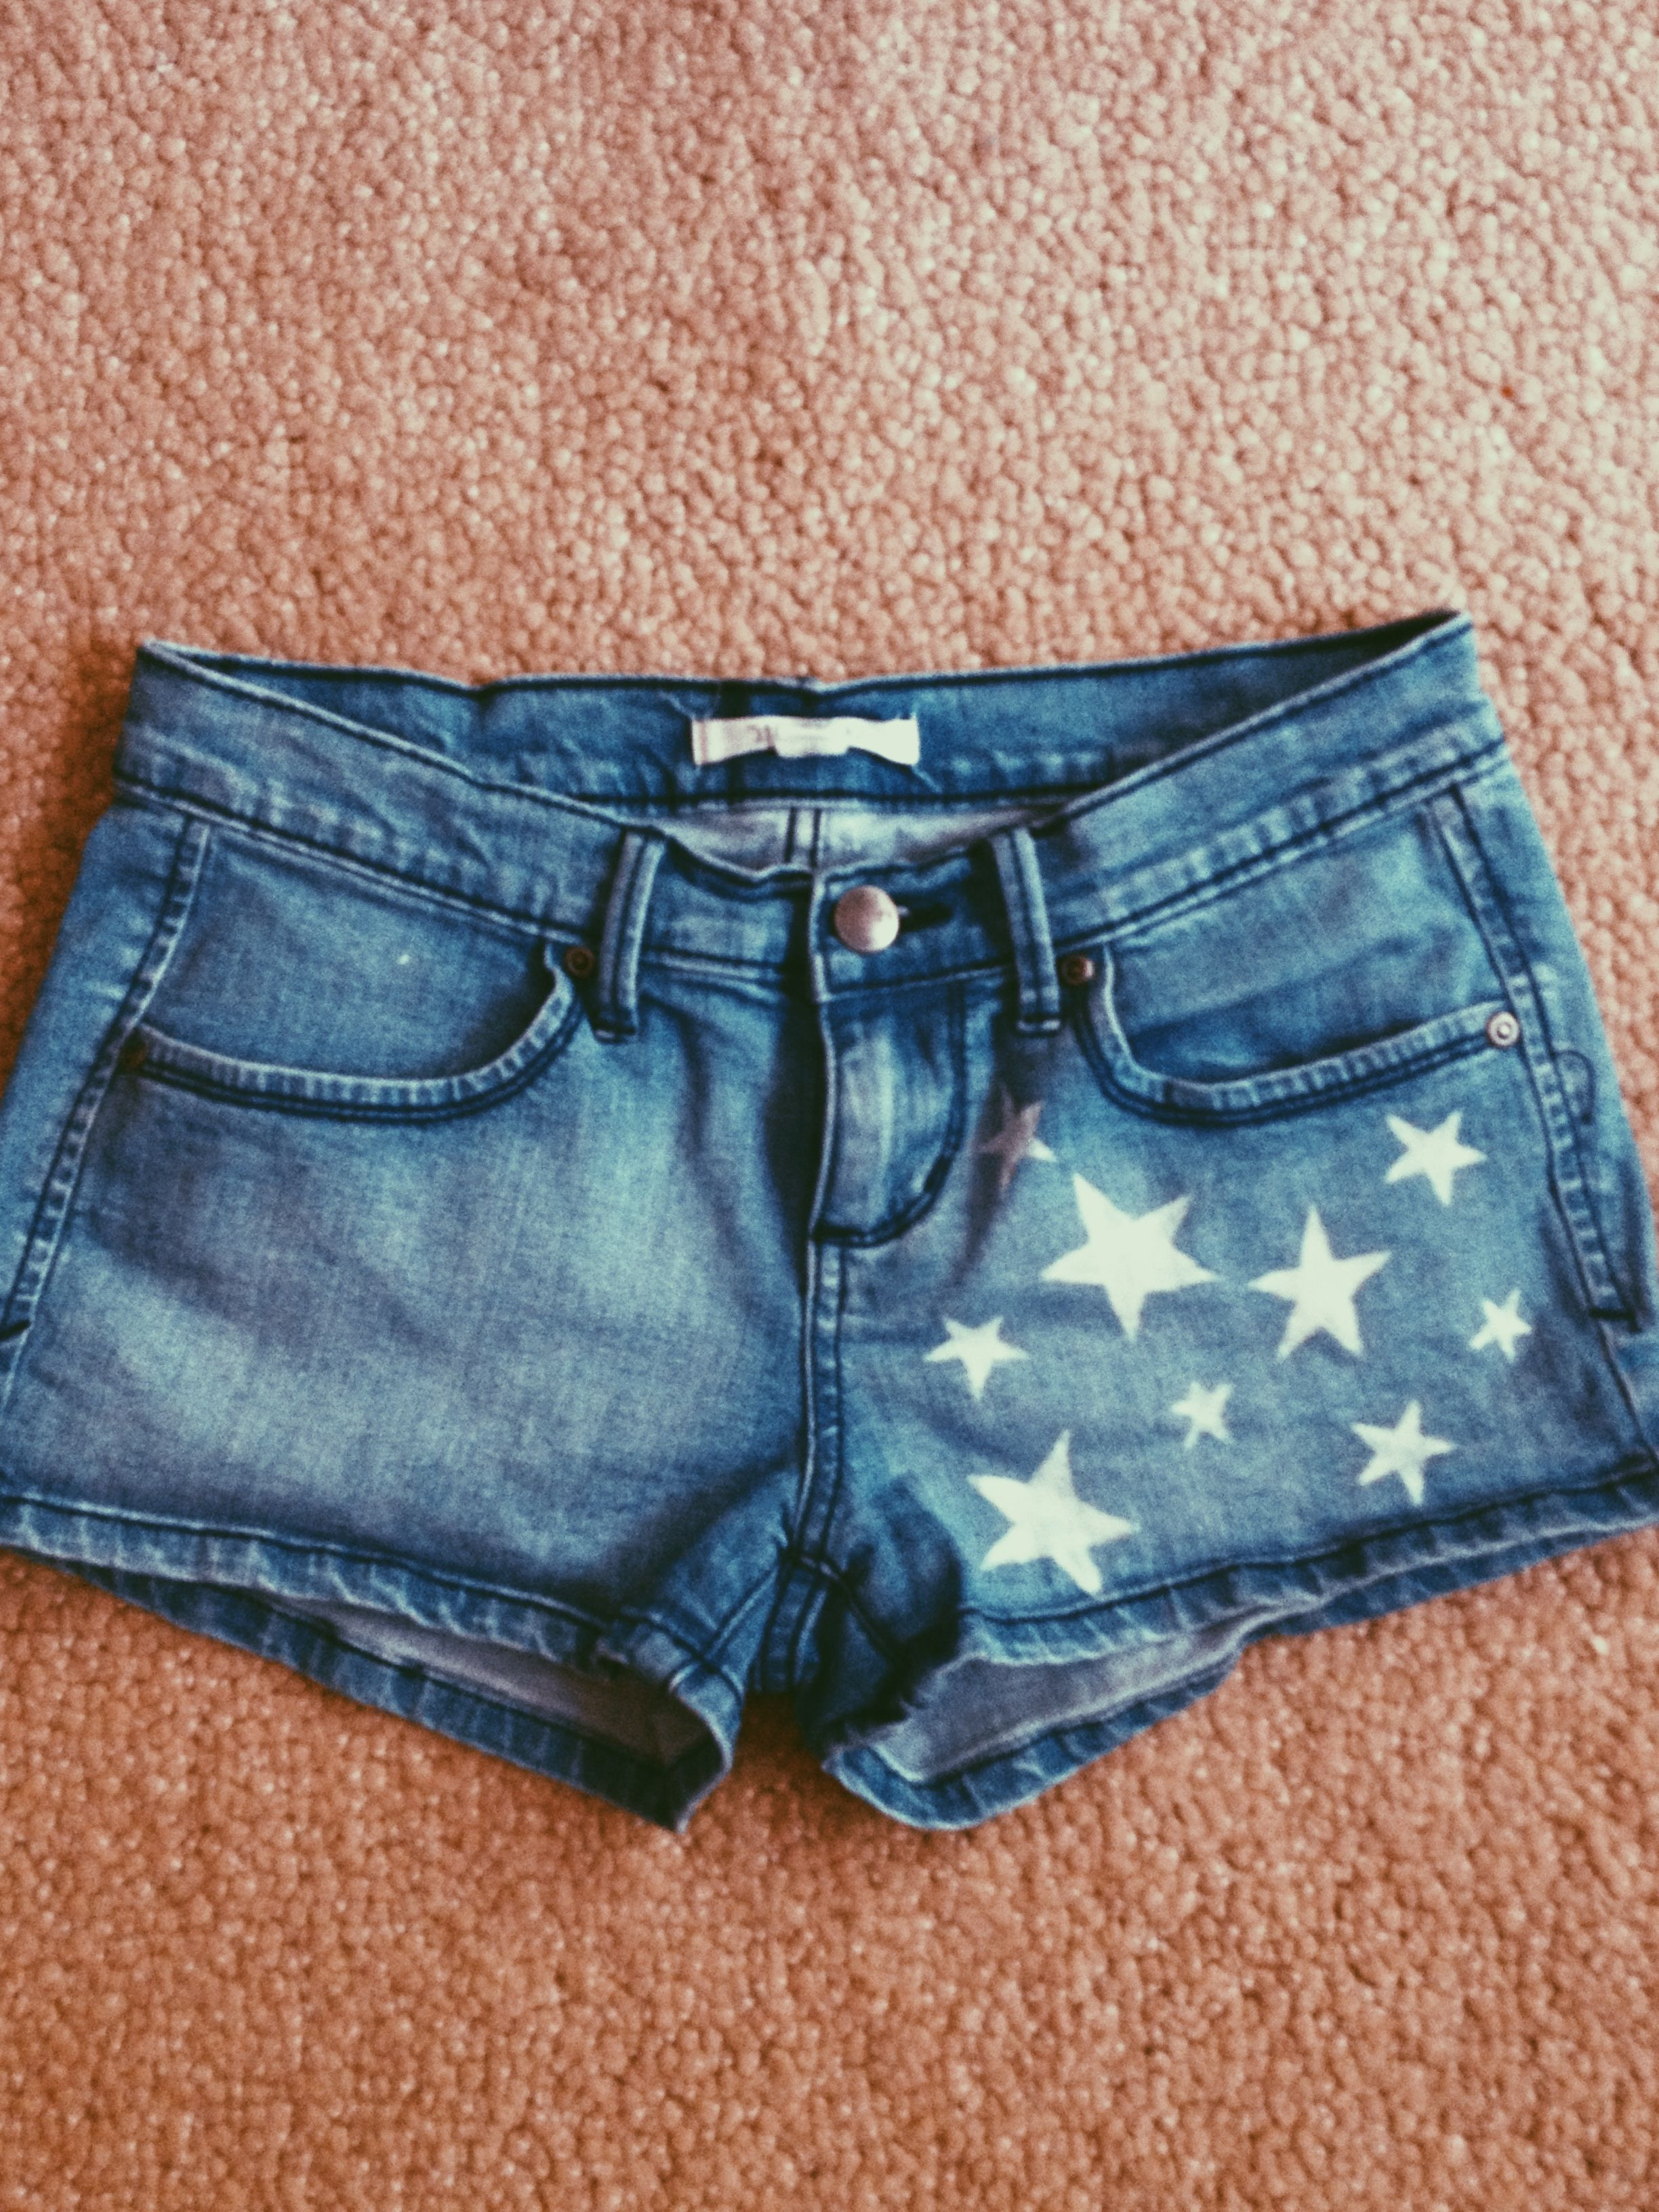 Make old shorts festive, just by using a bleach pen